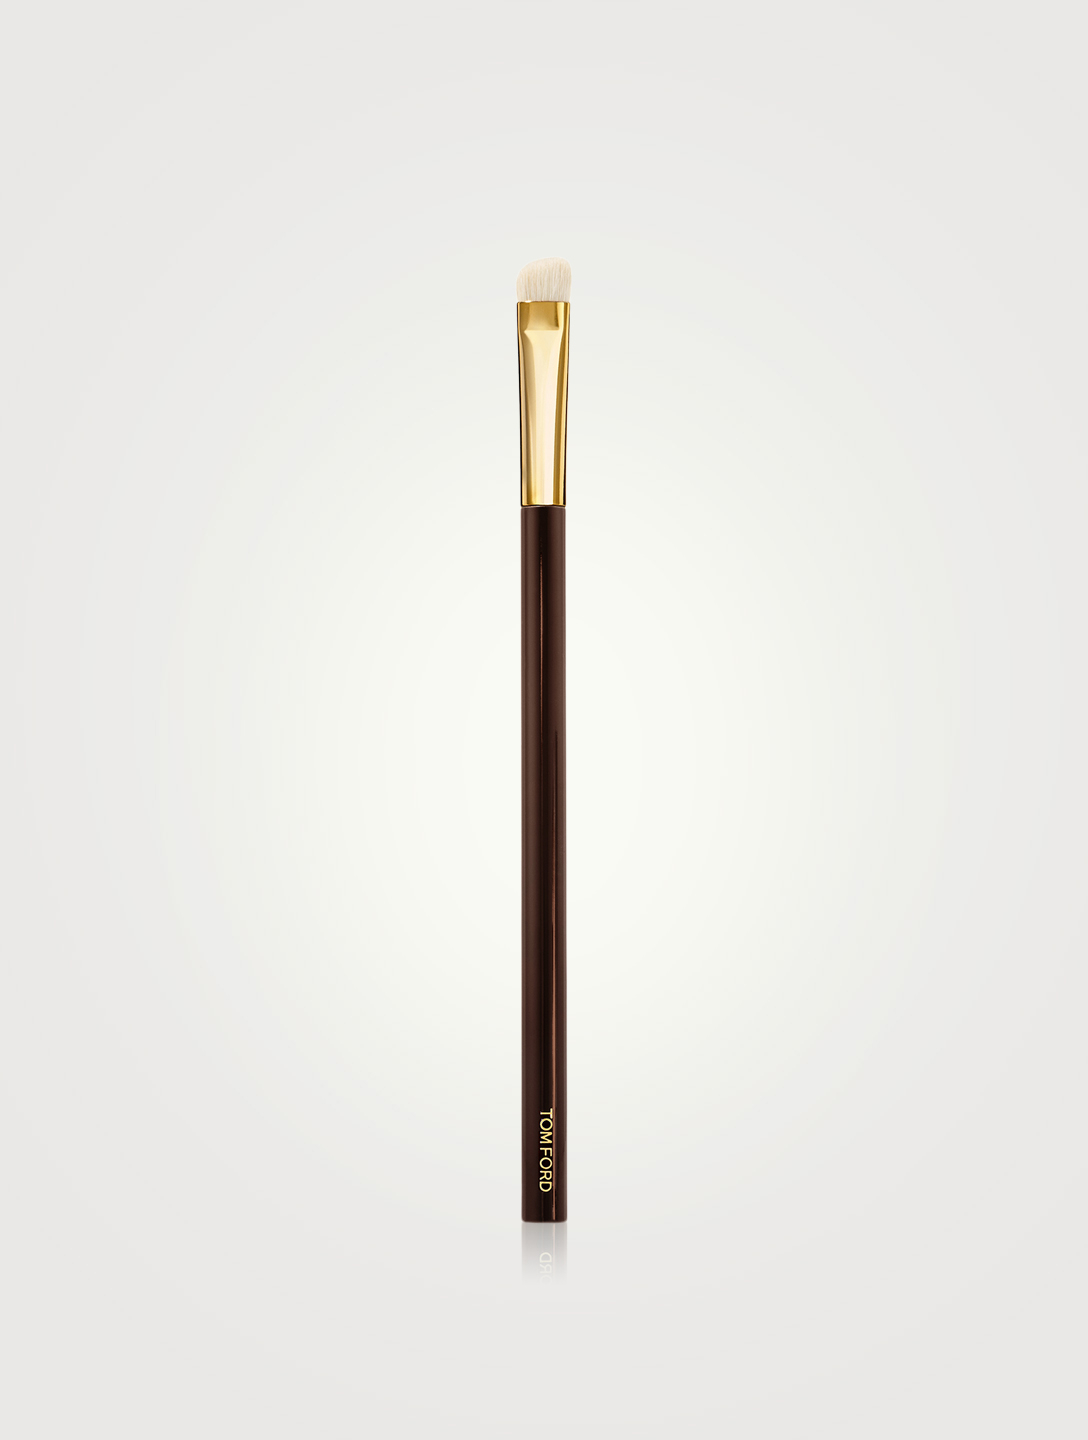 TOM FORD Eye Contour Brush 12 Beauty